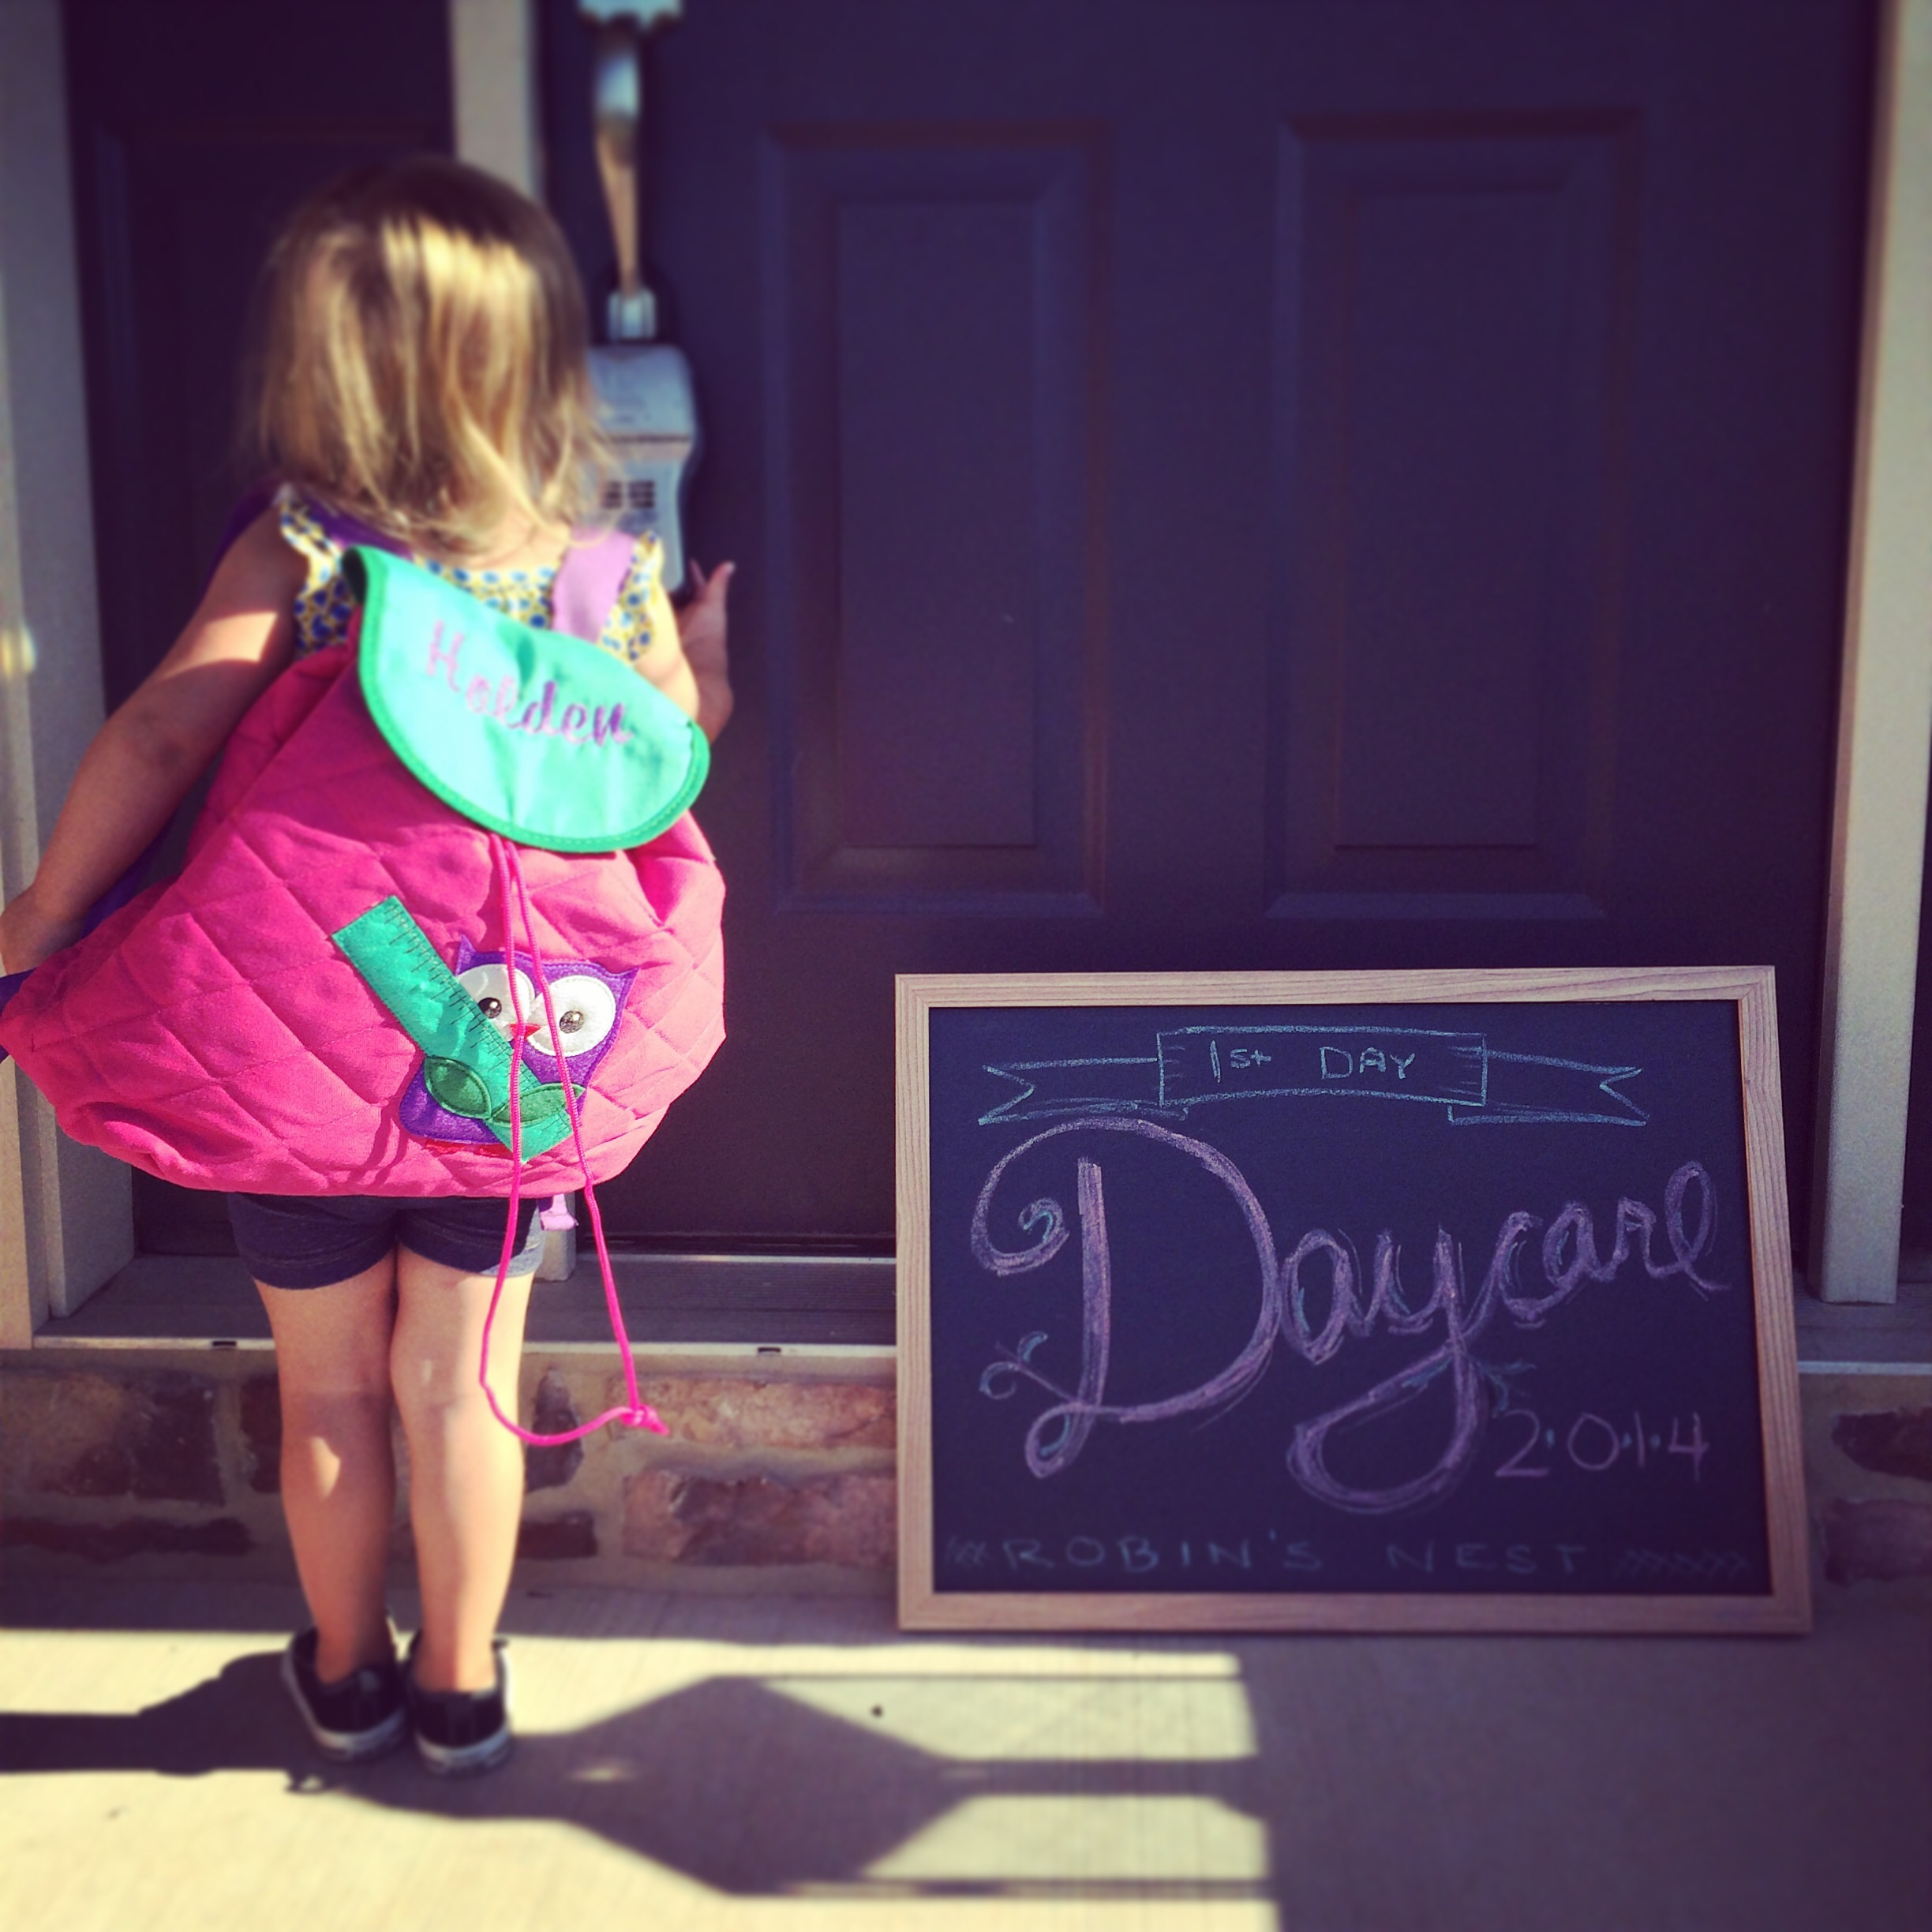 First day of Daycare @ohbotherblog